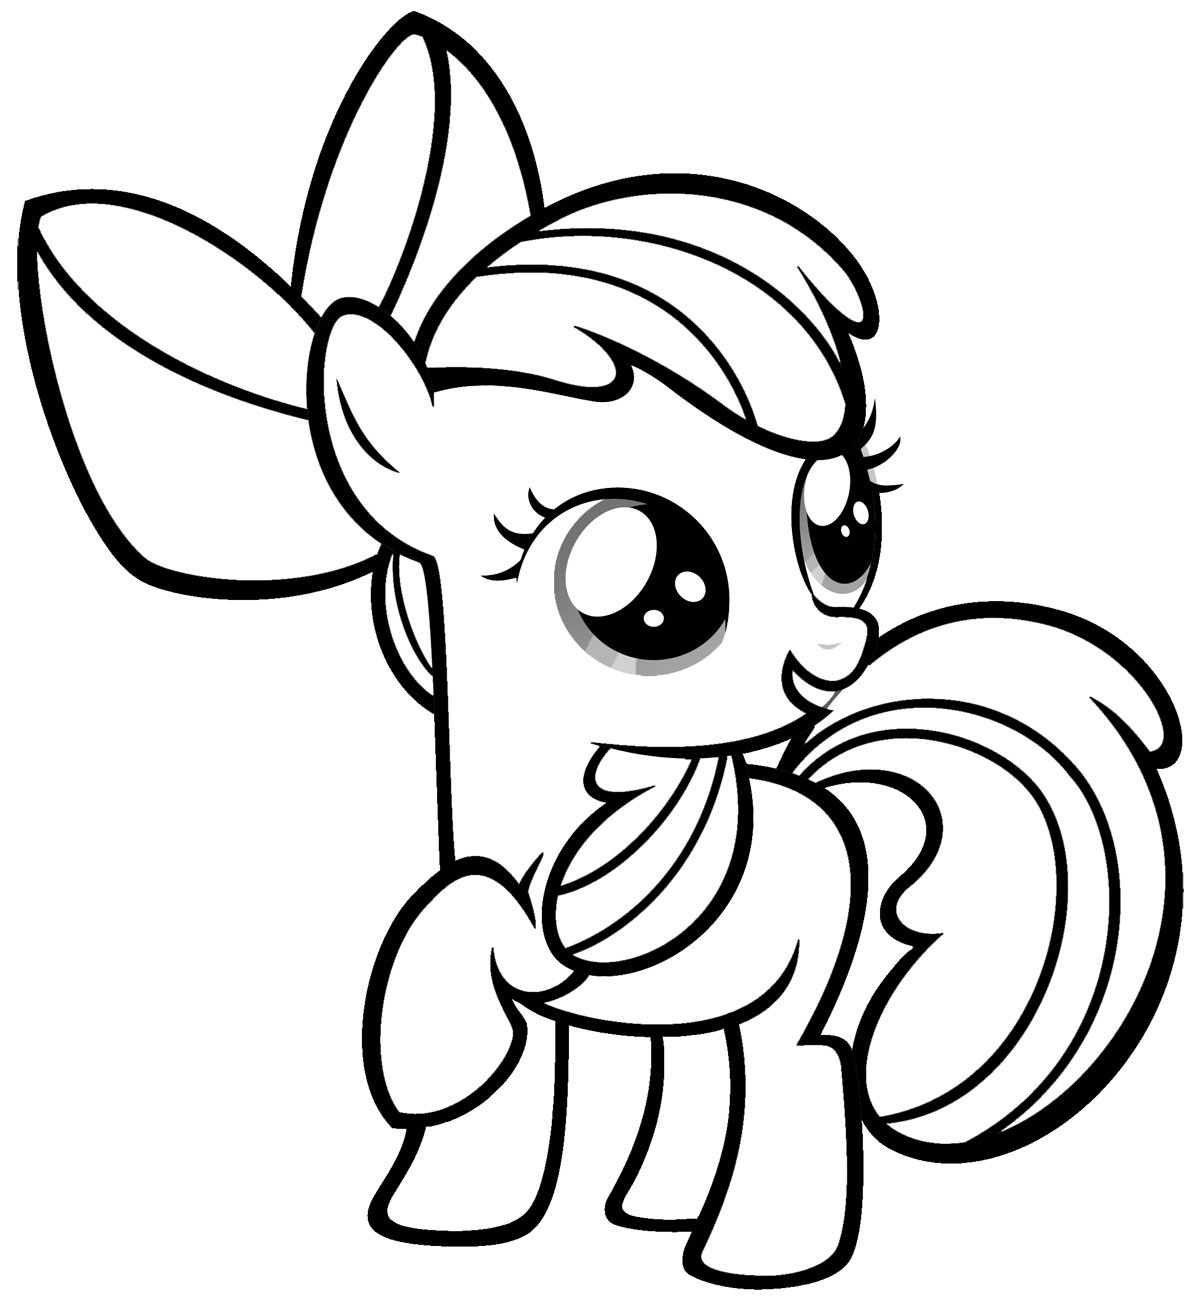 Uncategorized Baby My Little Pony Coloring Pages free printable my little pony coloring pages for kids online